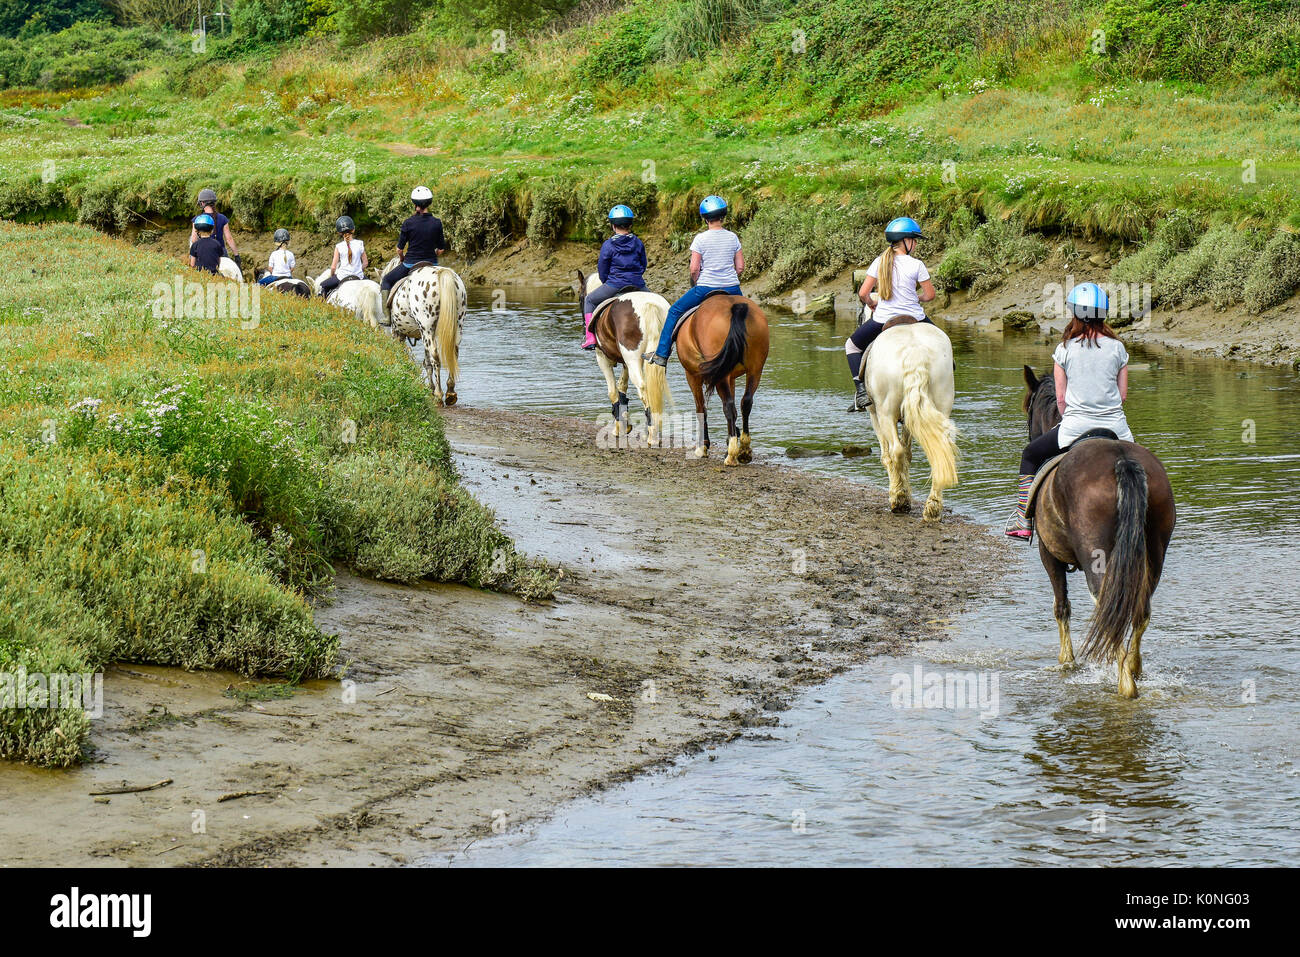 Pony trekking along the Gannel River and tidal estuary in Newquay in Cornwall. - Stock Image